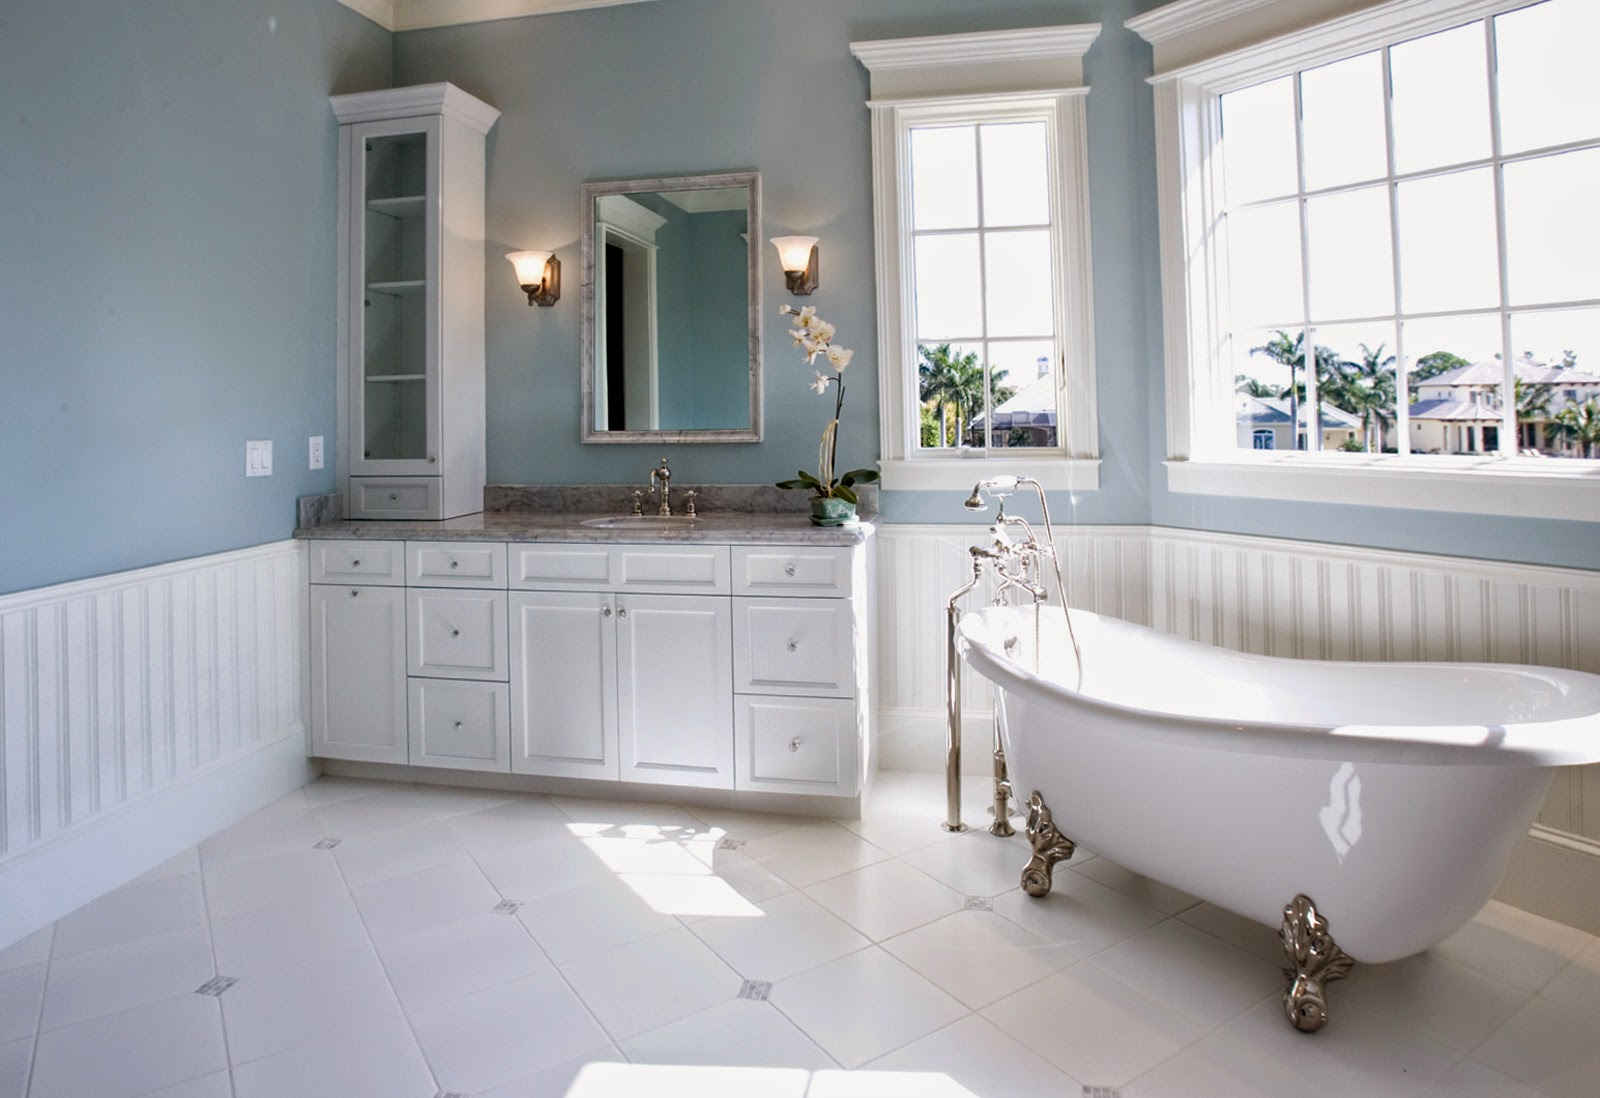 Top 10 beautiful bathroom design 2014 home interior blog for House bathroom design